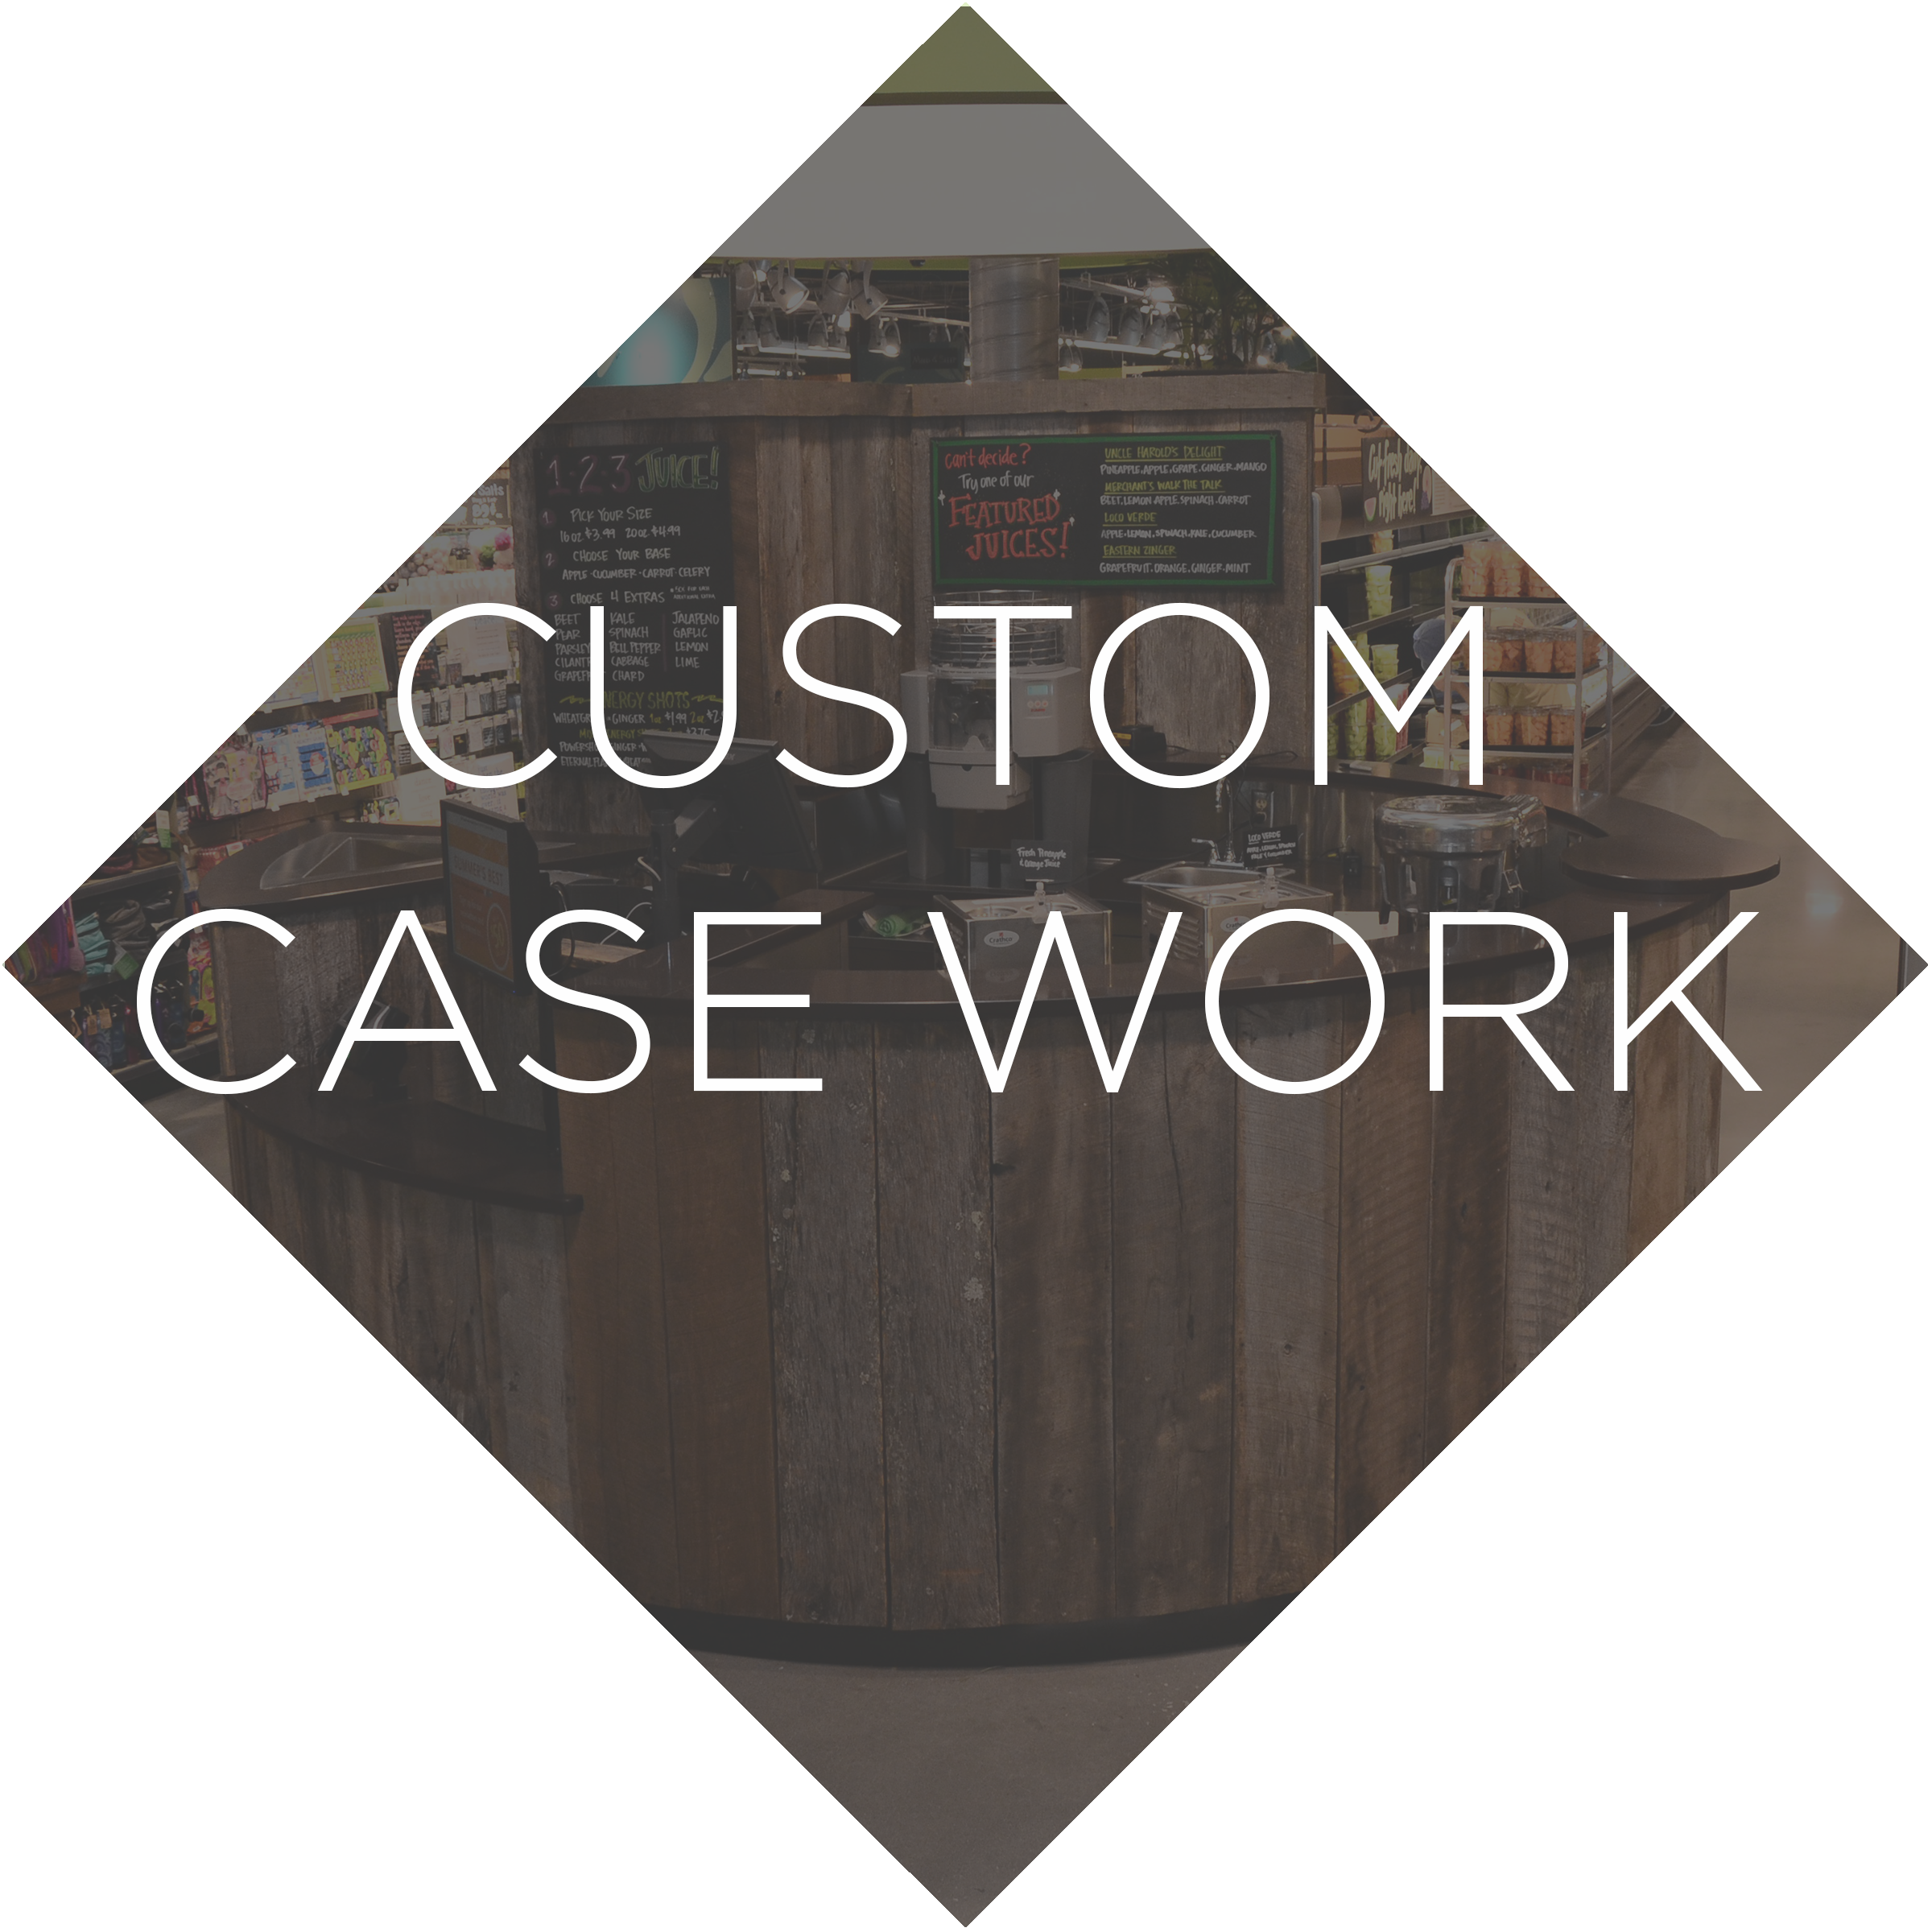 Custom Case Work.png